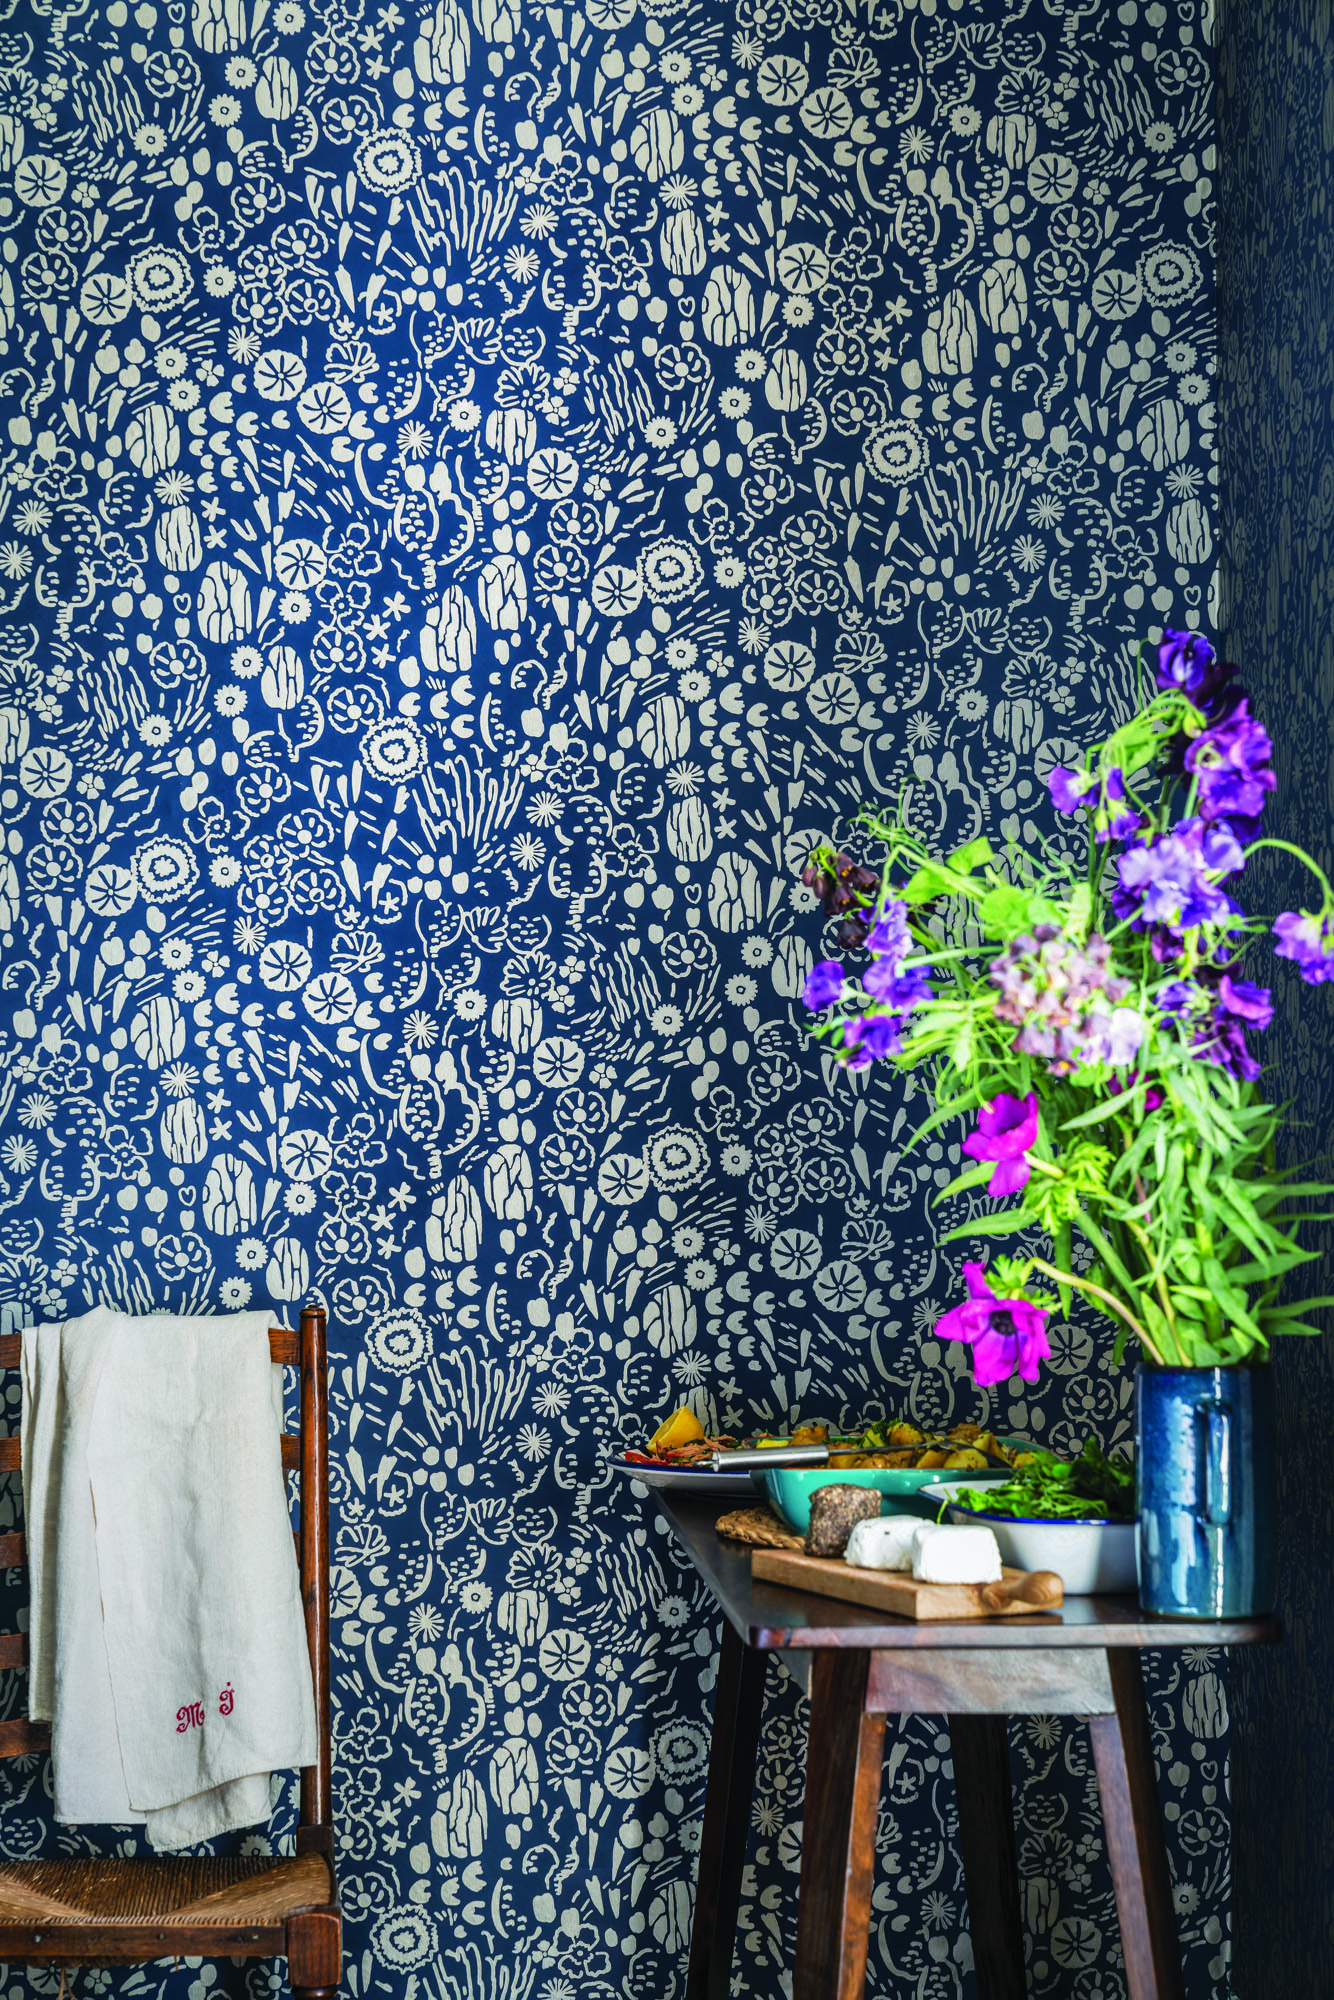 Farrow and Ball's new wallpaper collection.